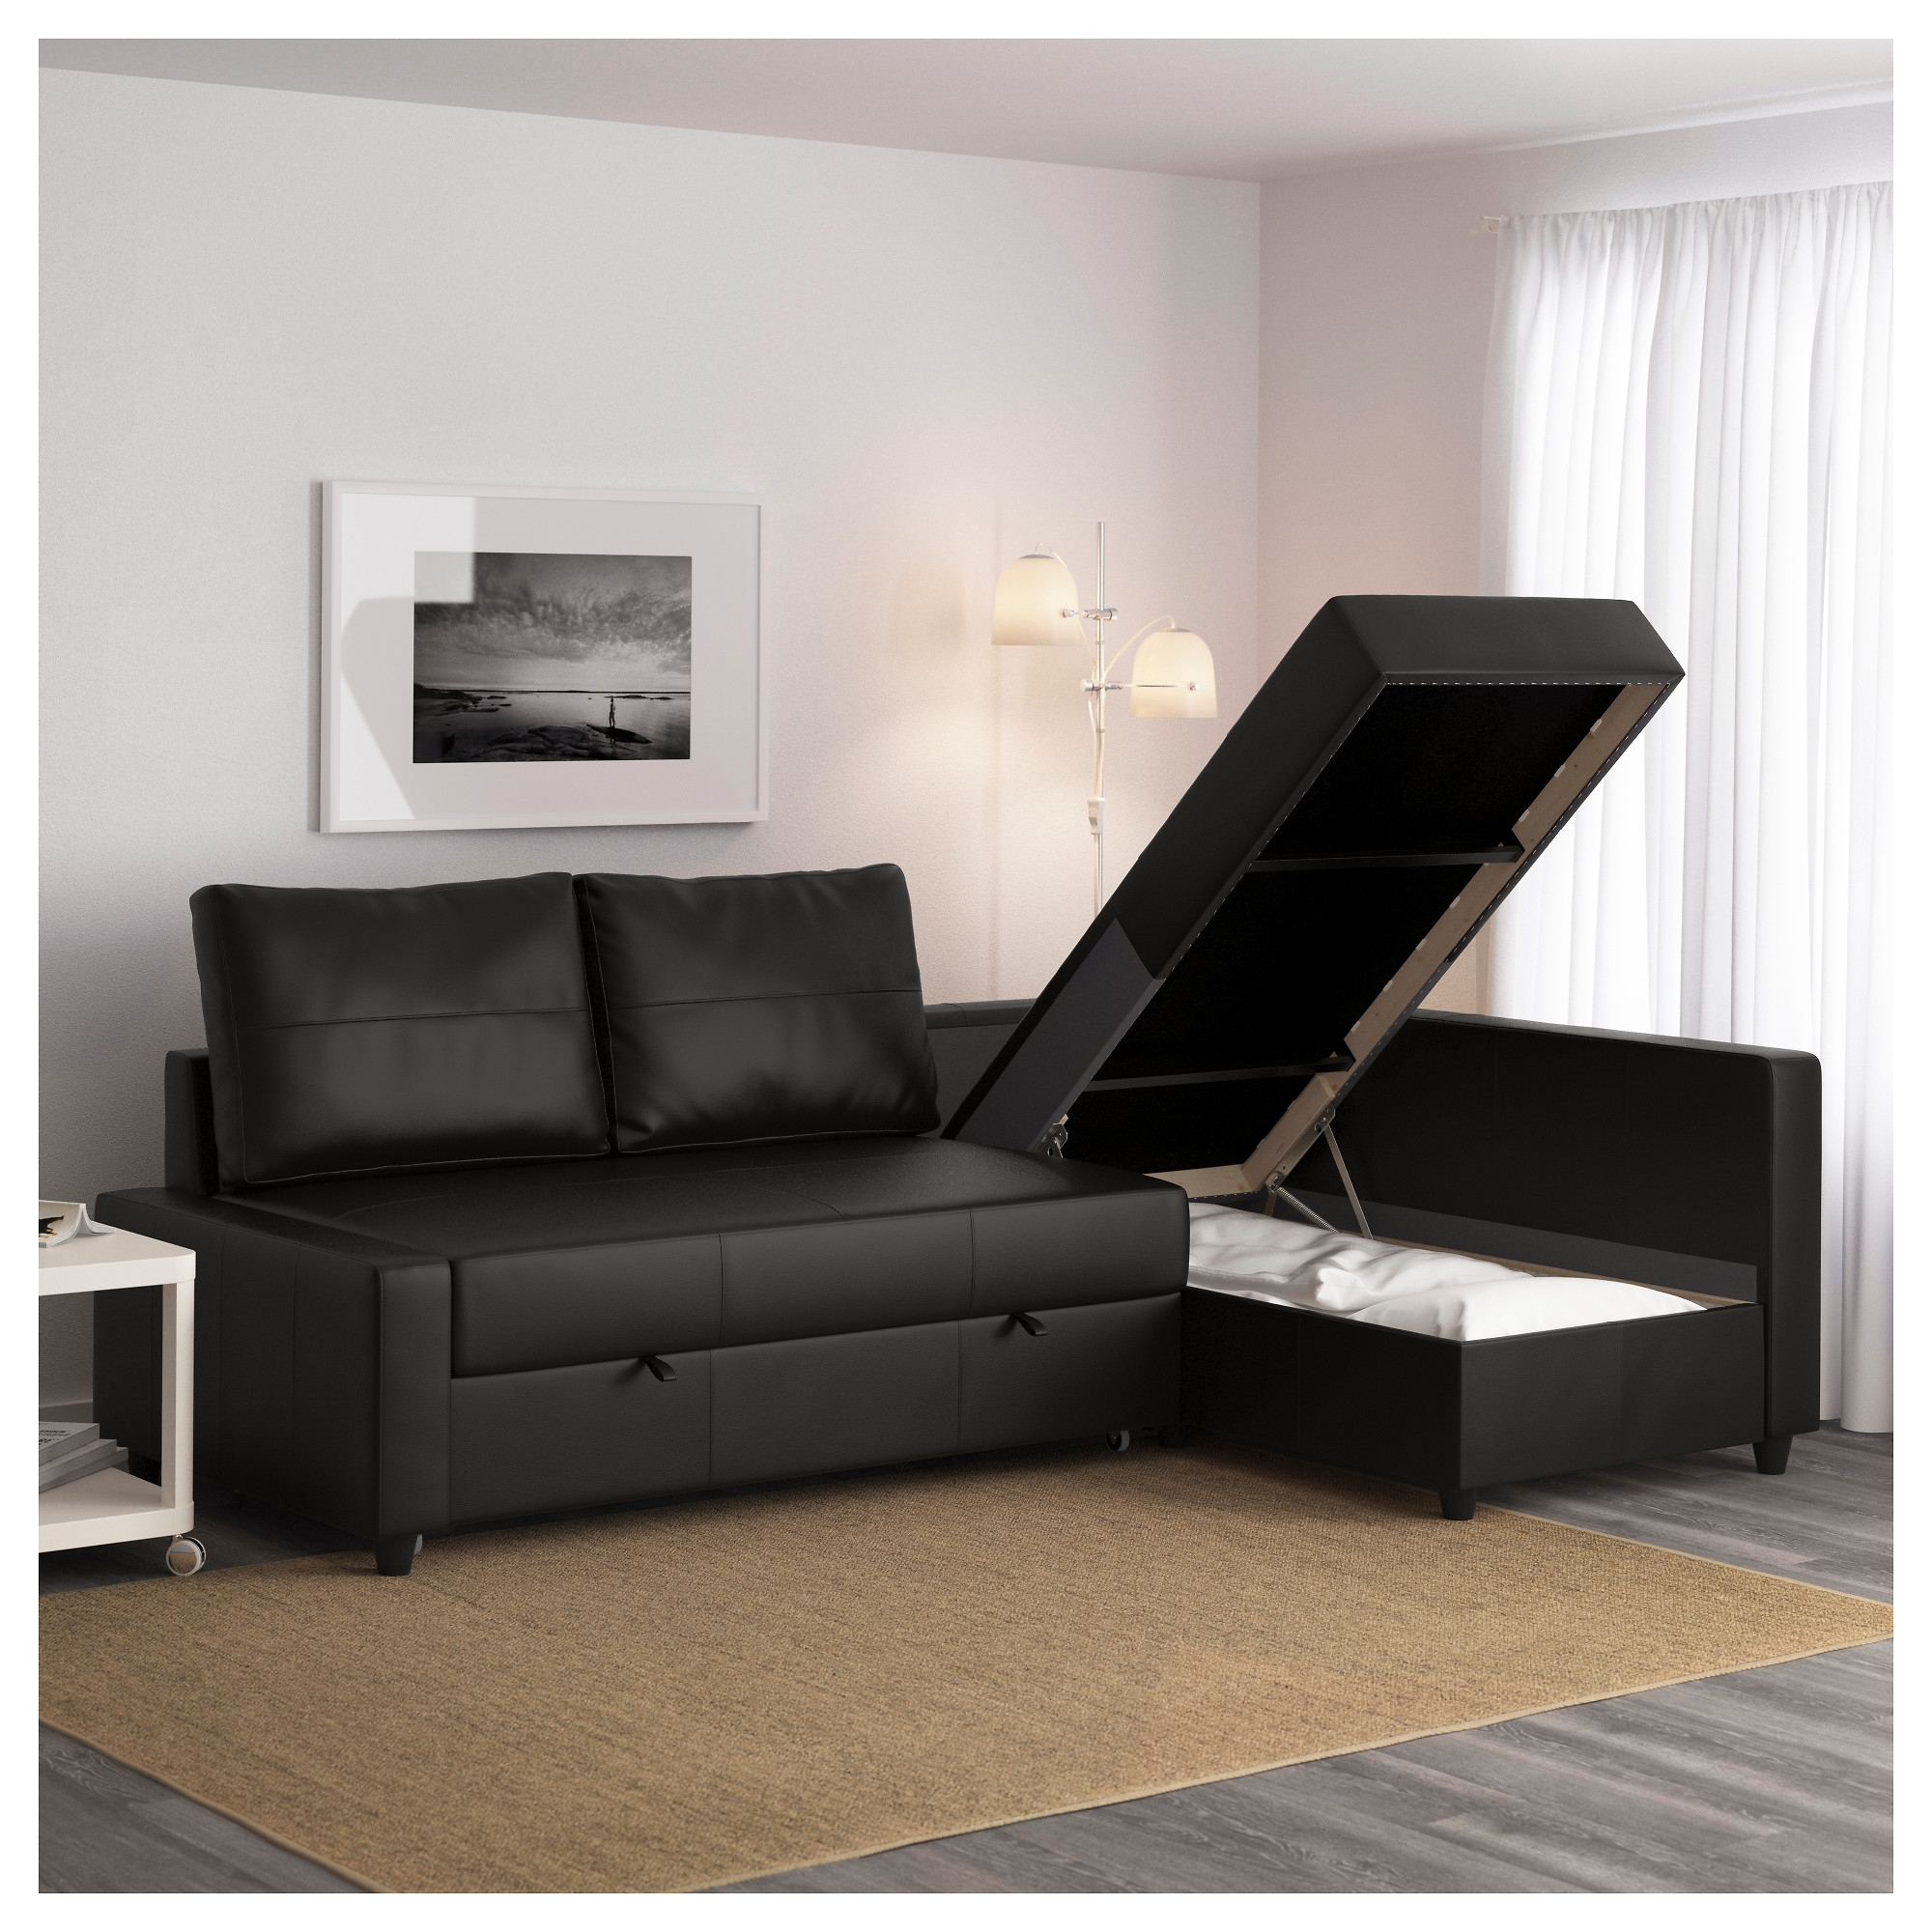 Recent Friheten Sleeper Sectional,3 Seat W/storage – Skiftebo Dark Gray Inside Storage Sofas (View 3 of 15)